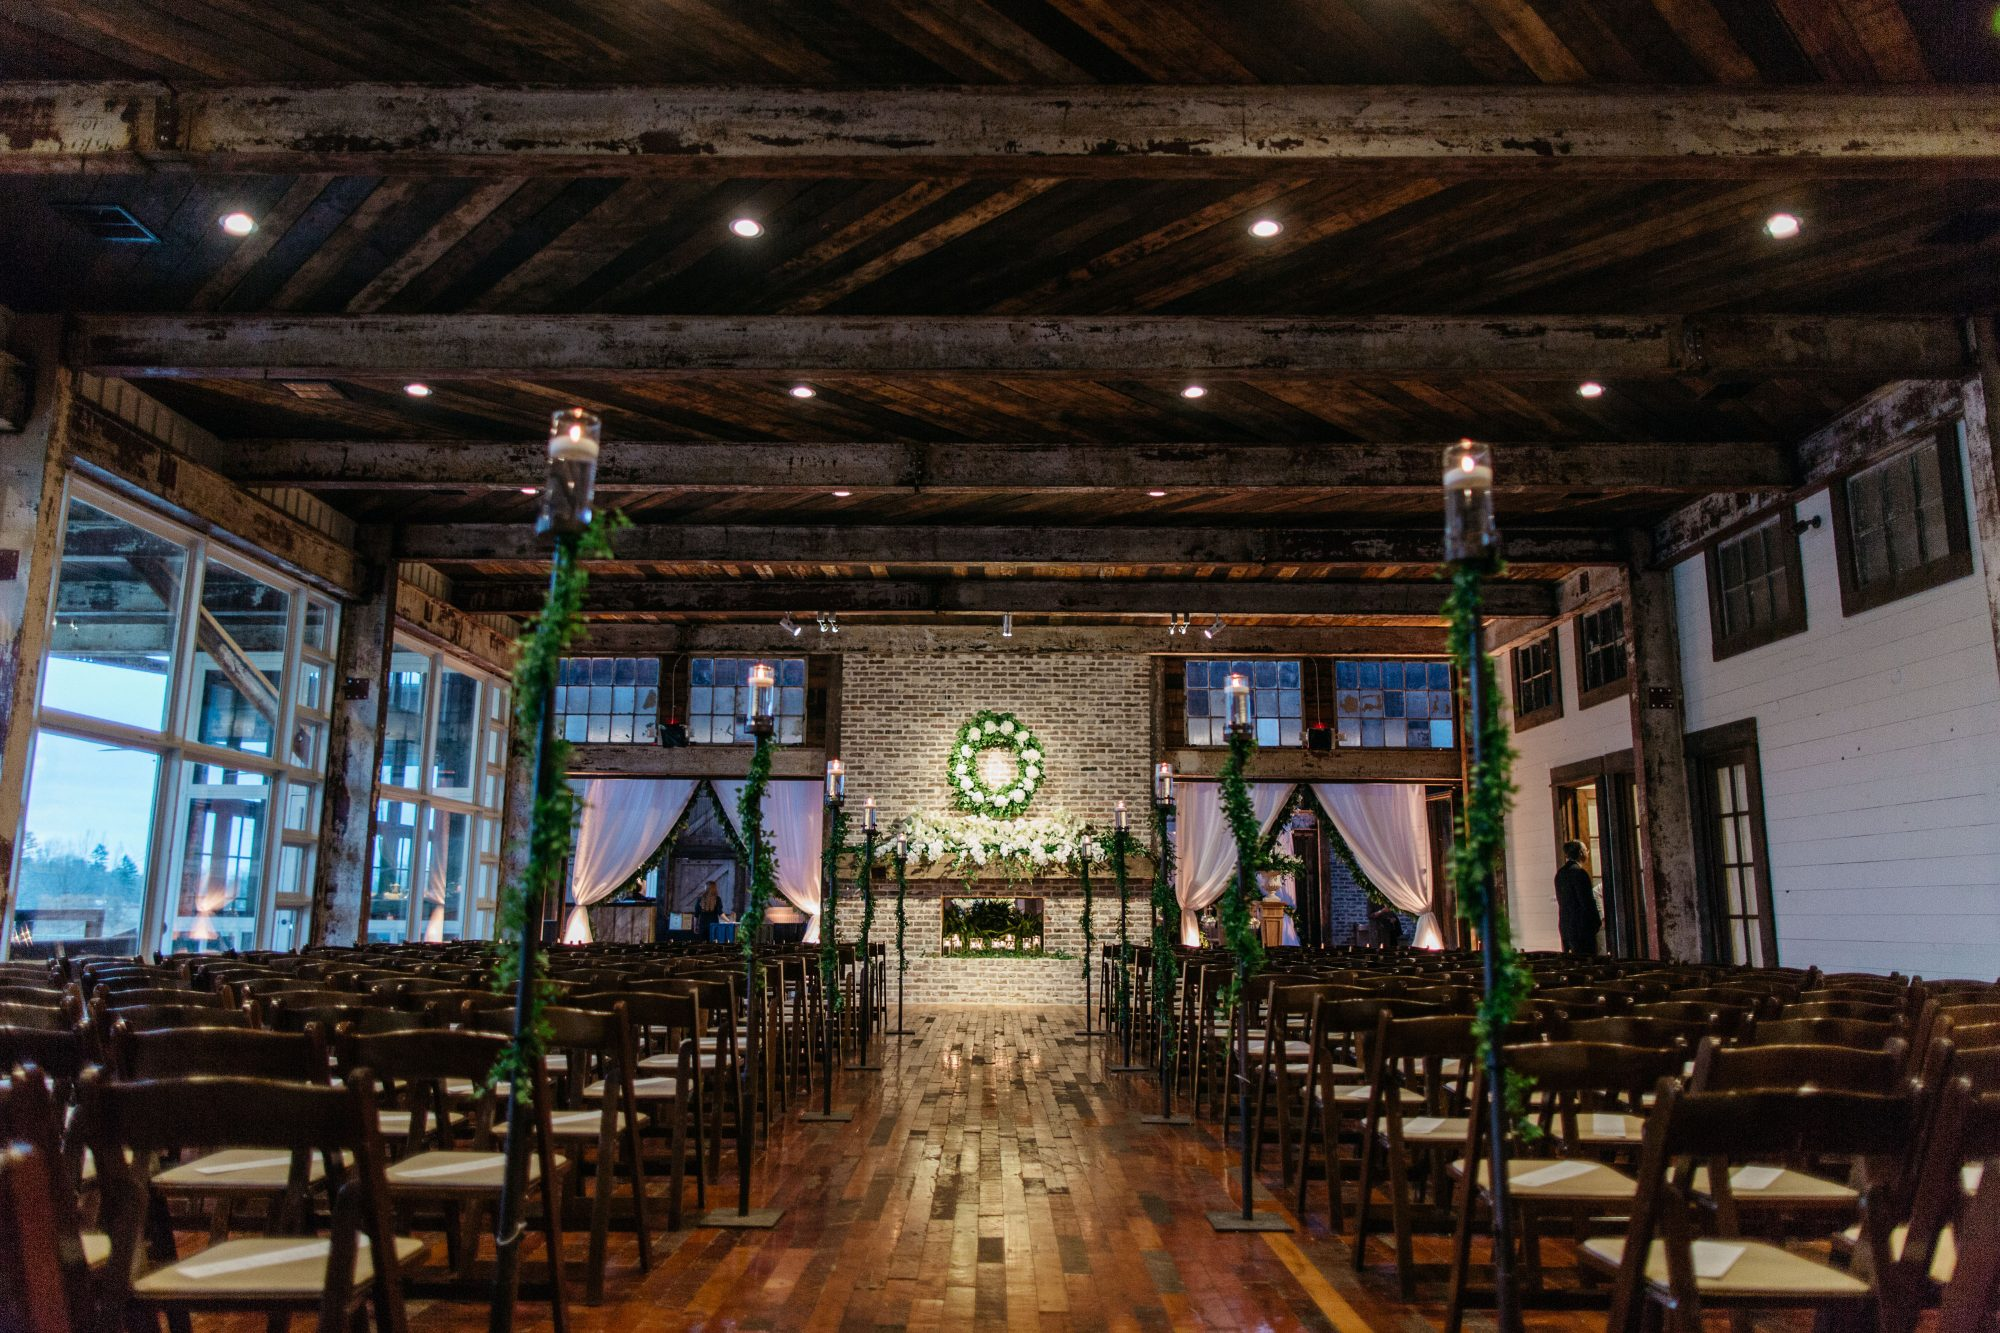 A Whimsical Wooden Ceremony Space